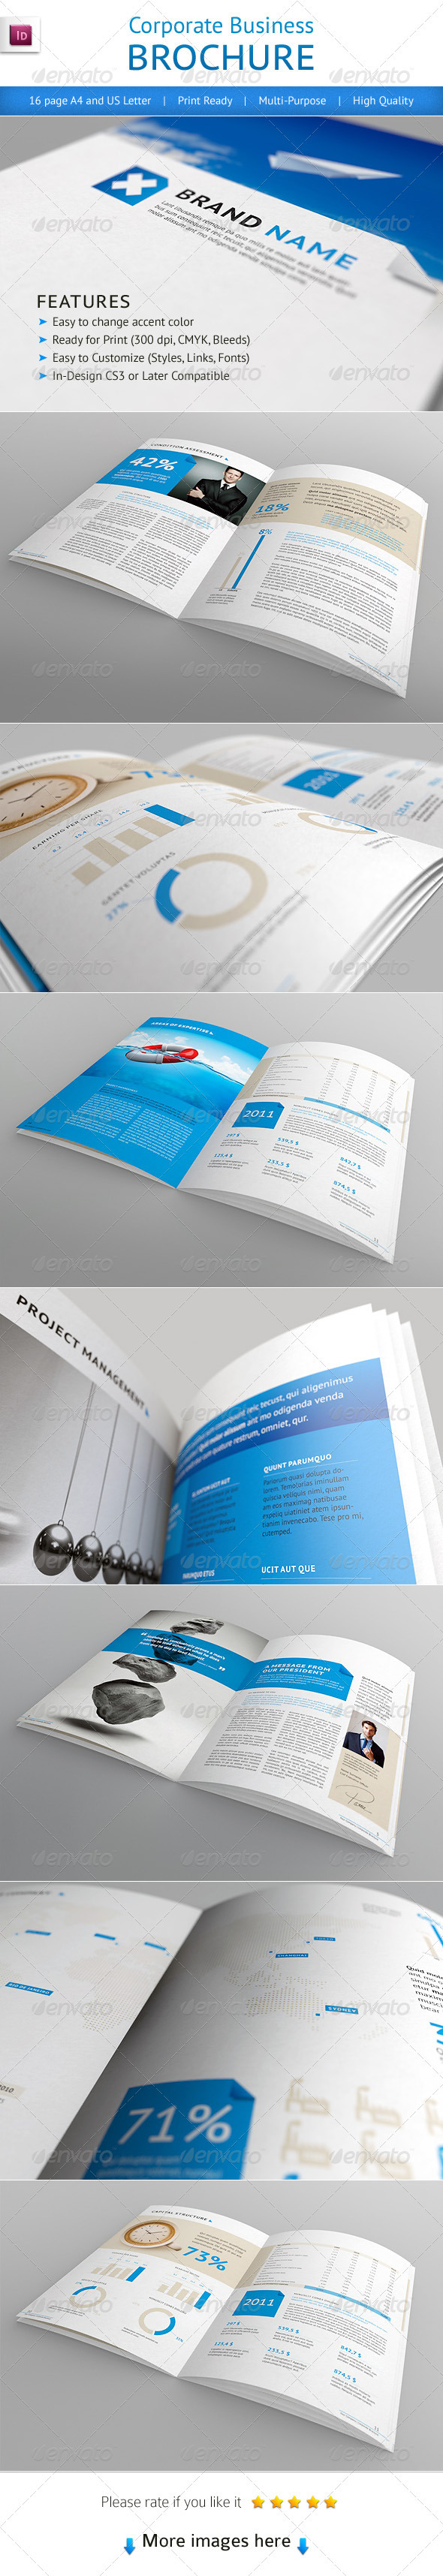 GraphicRiver Professional Corporate Business Brochure 1378708